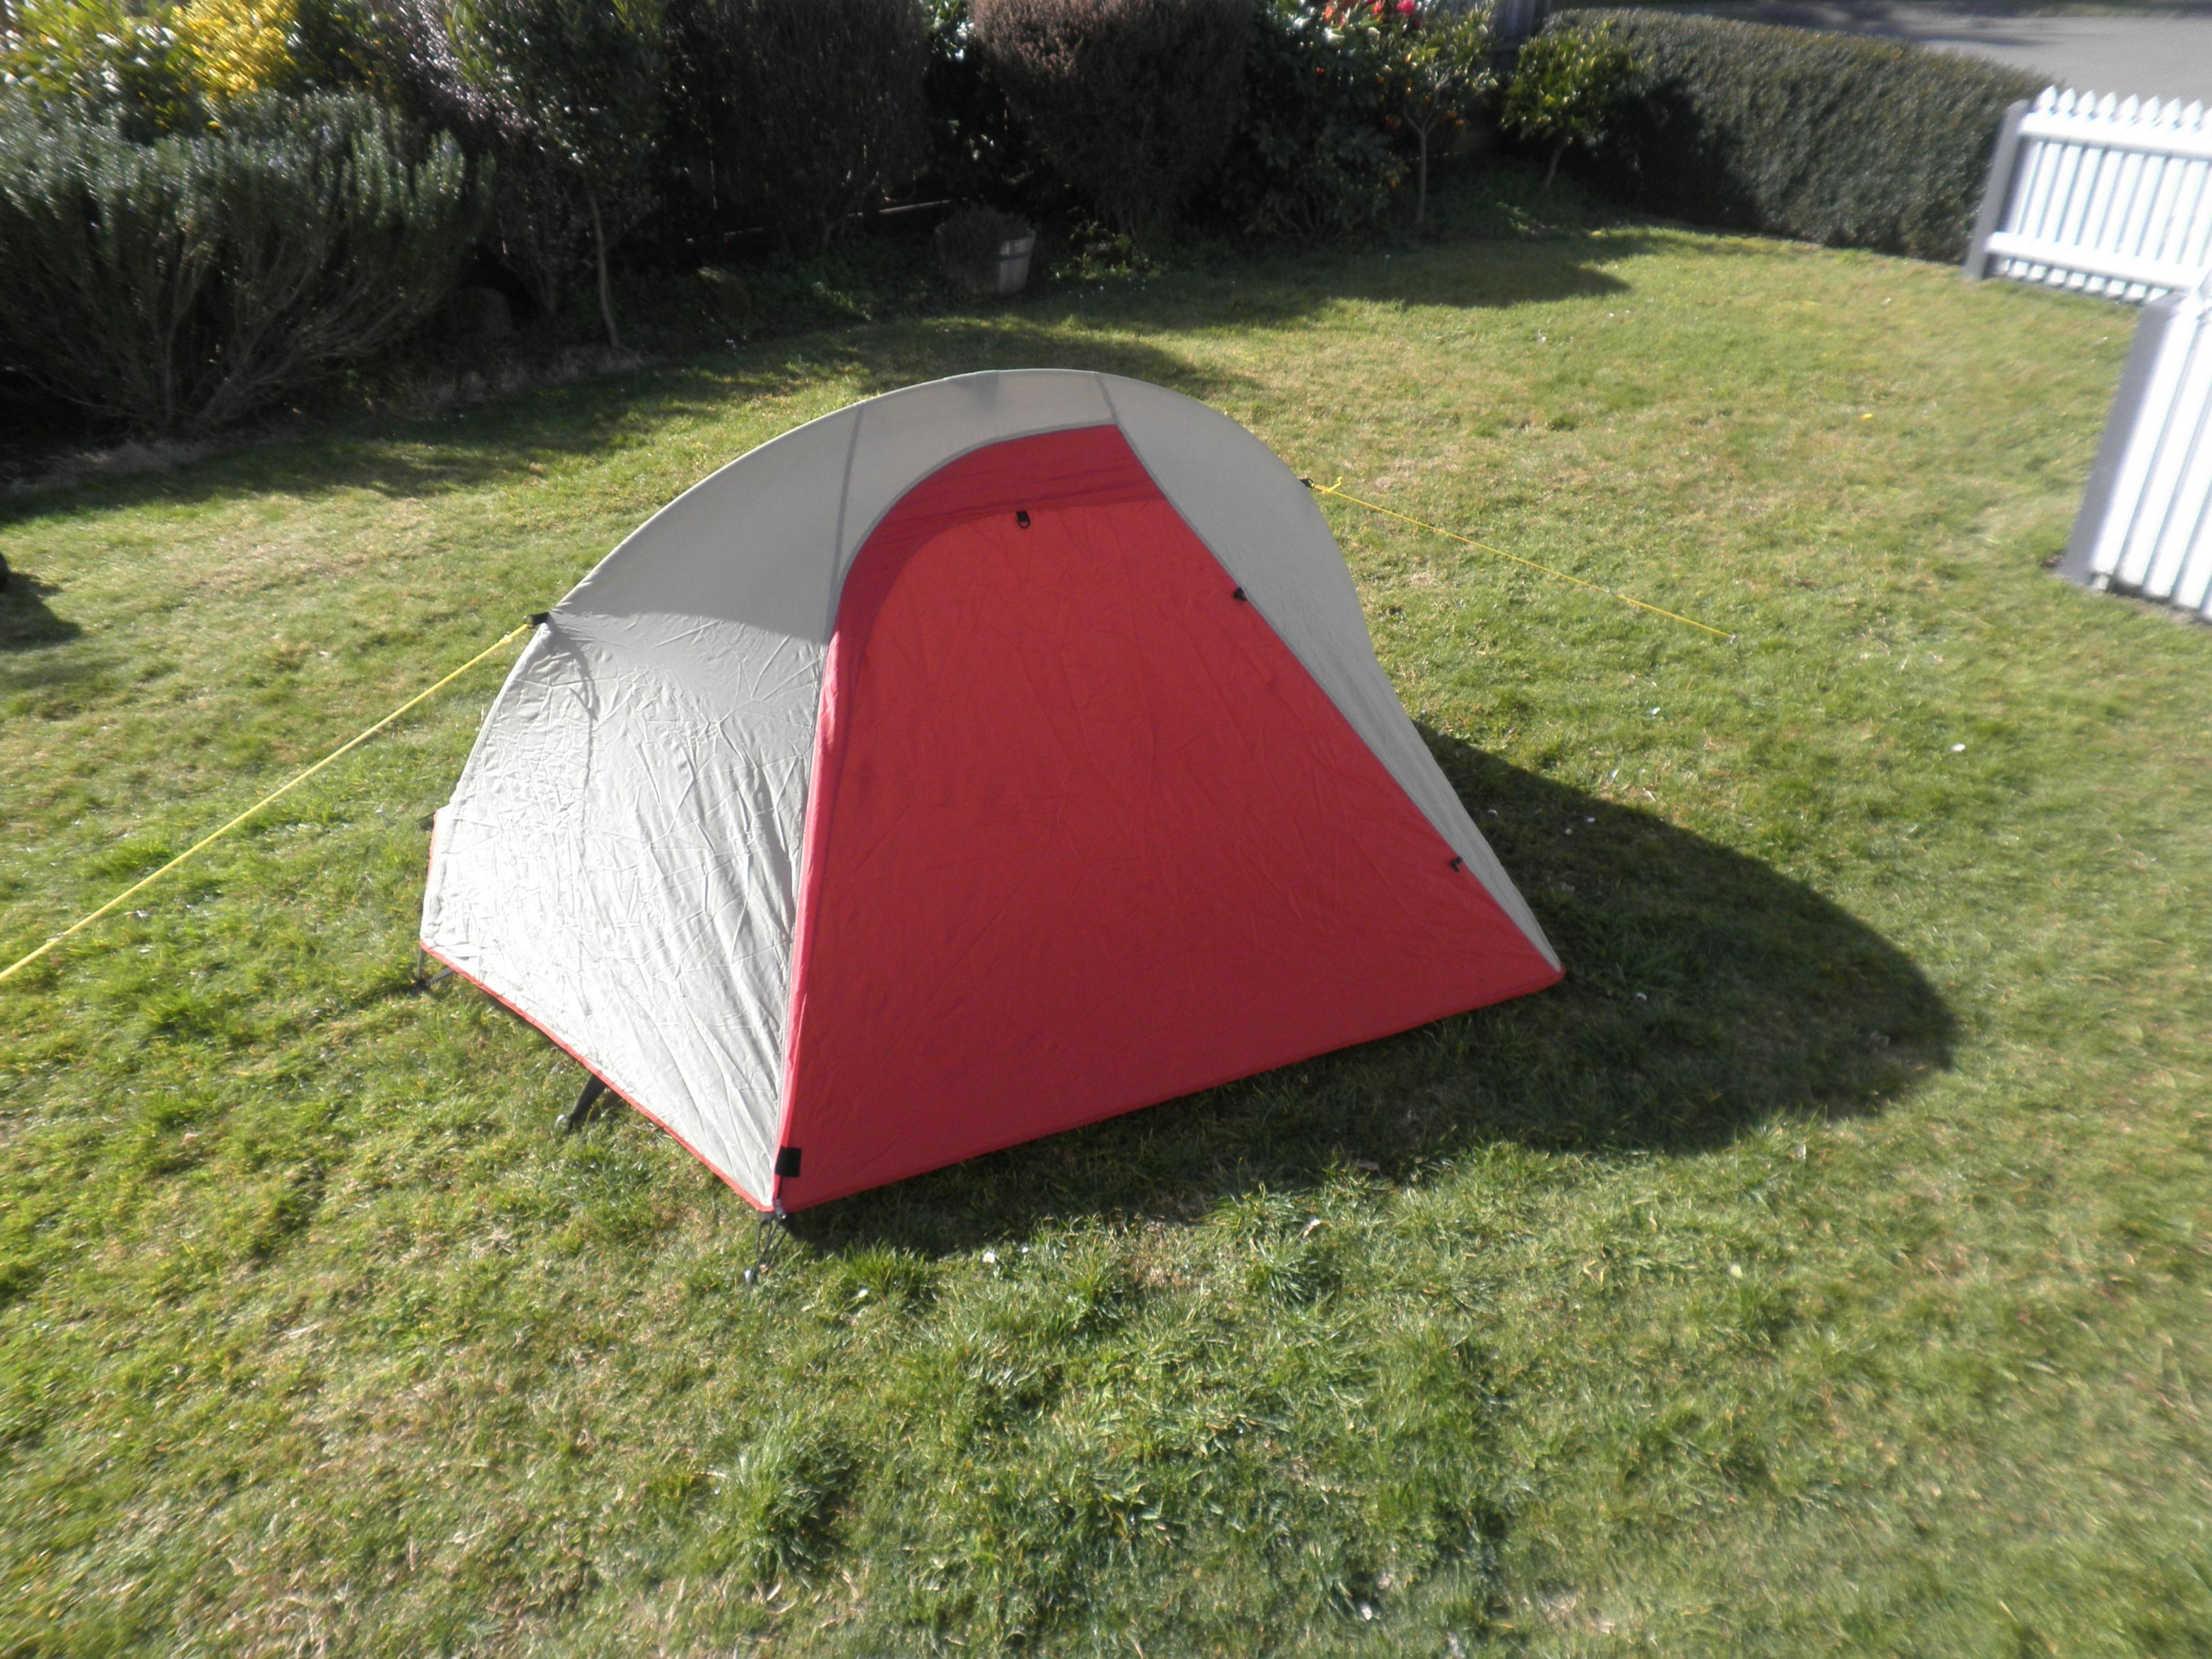 Name P7280934.jpg Views 545 Size 1.06 MB & FS 1 man tent Great Outdoors Solitude